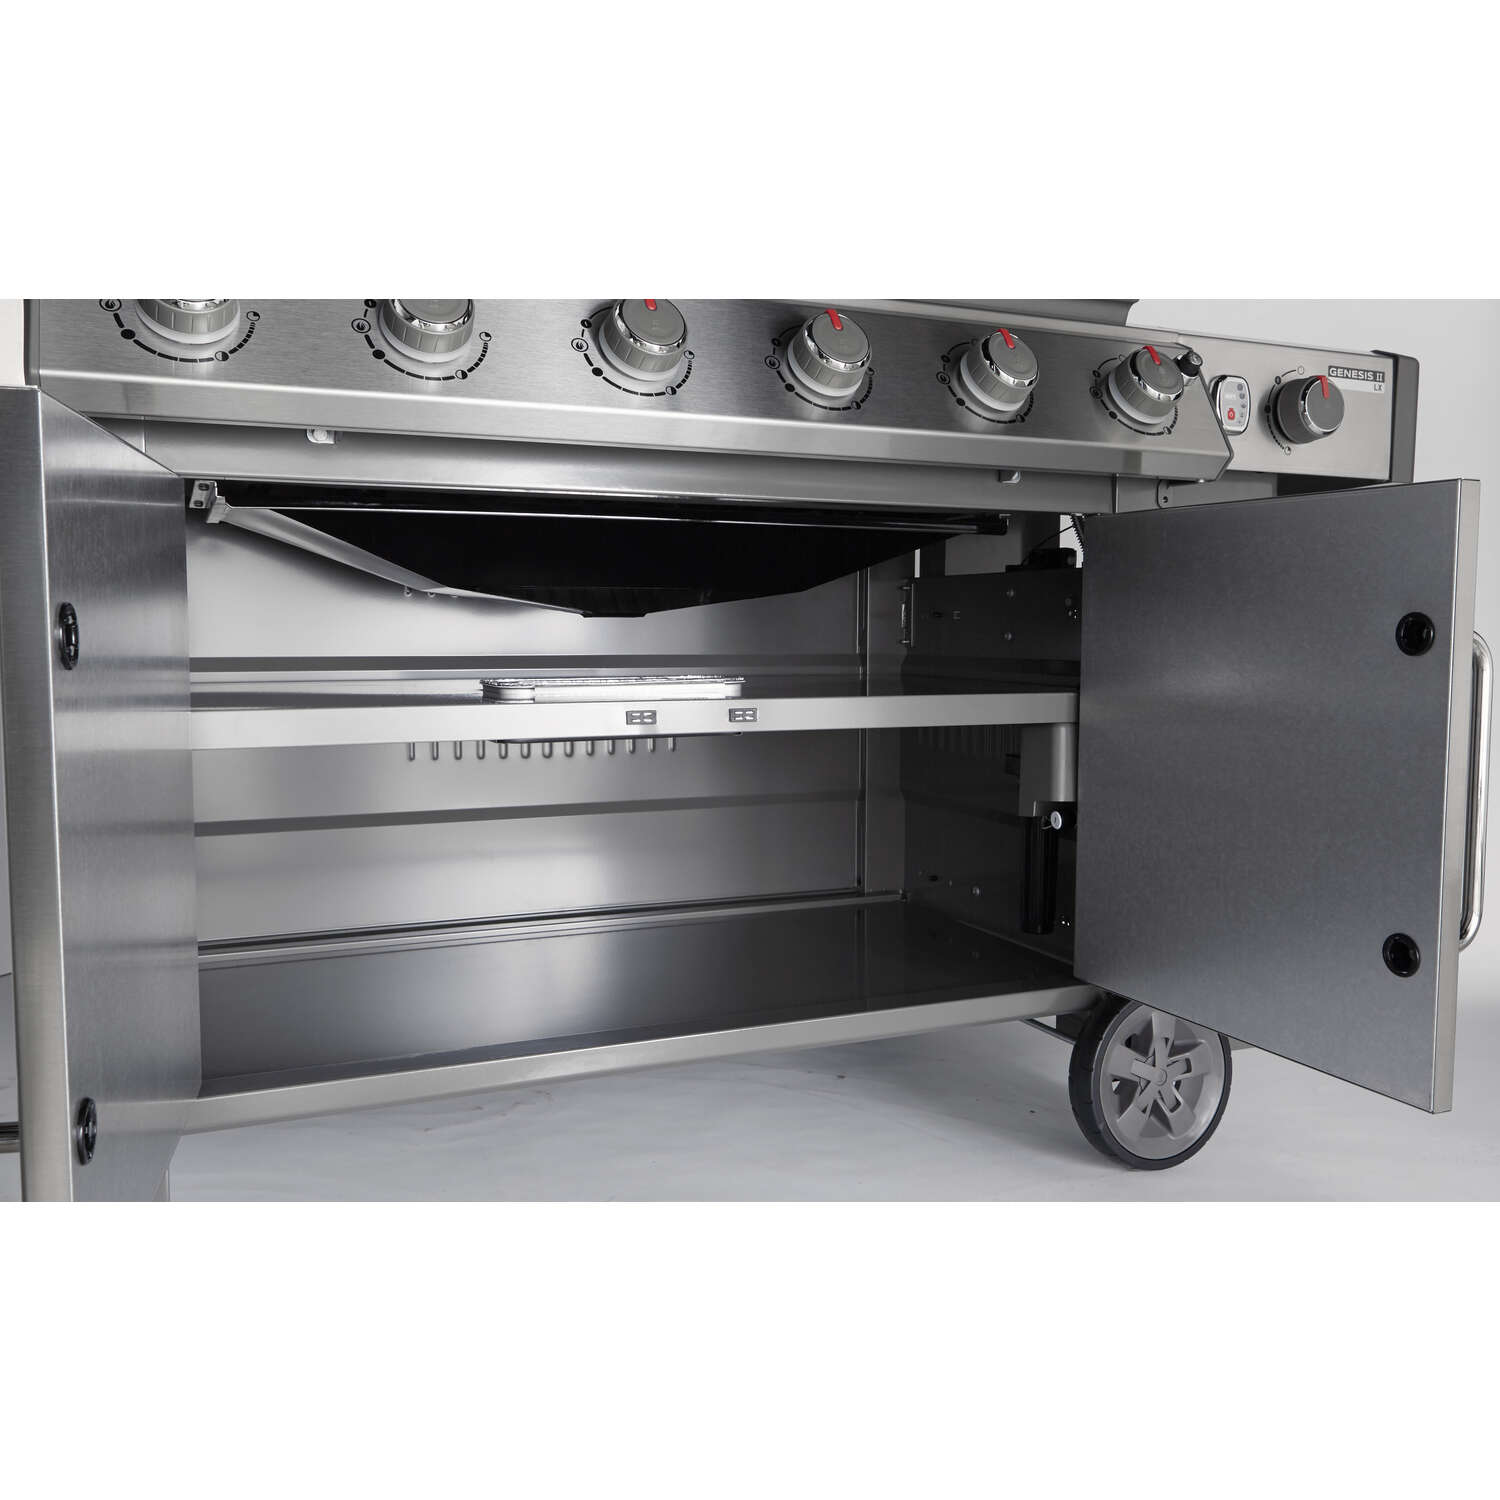 Weber  Genesis II LX S-440  4 burners Natural Gas  Stainless Steel  Grill  52000 BTU